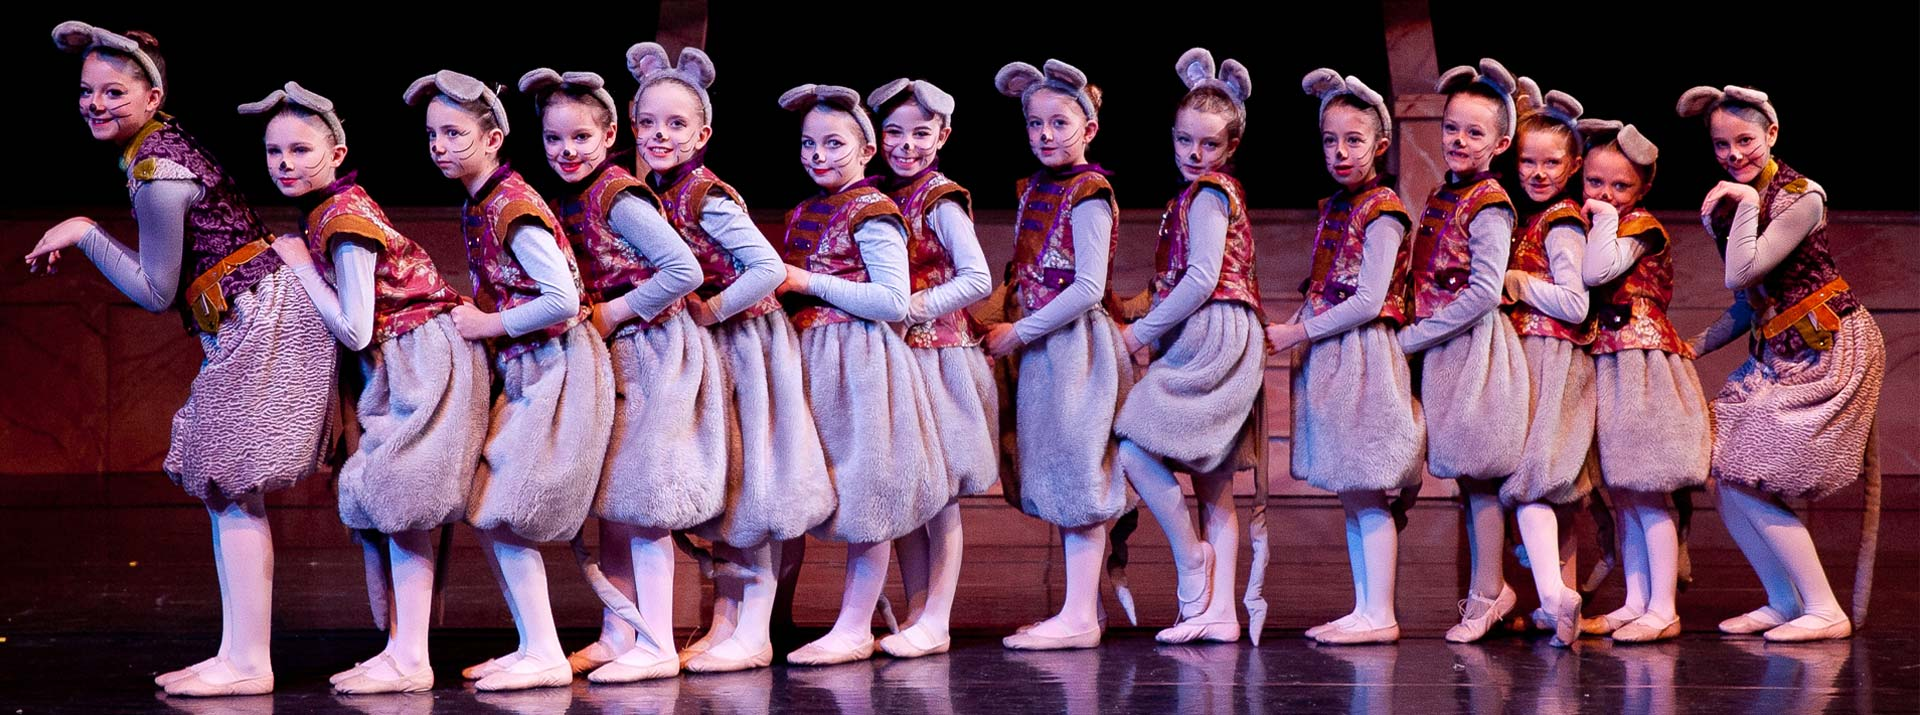 Programs at the Garden City Ballet - 14 girls with mice costumes